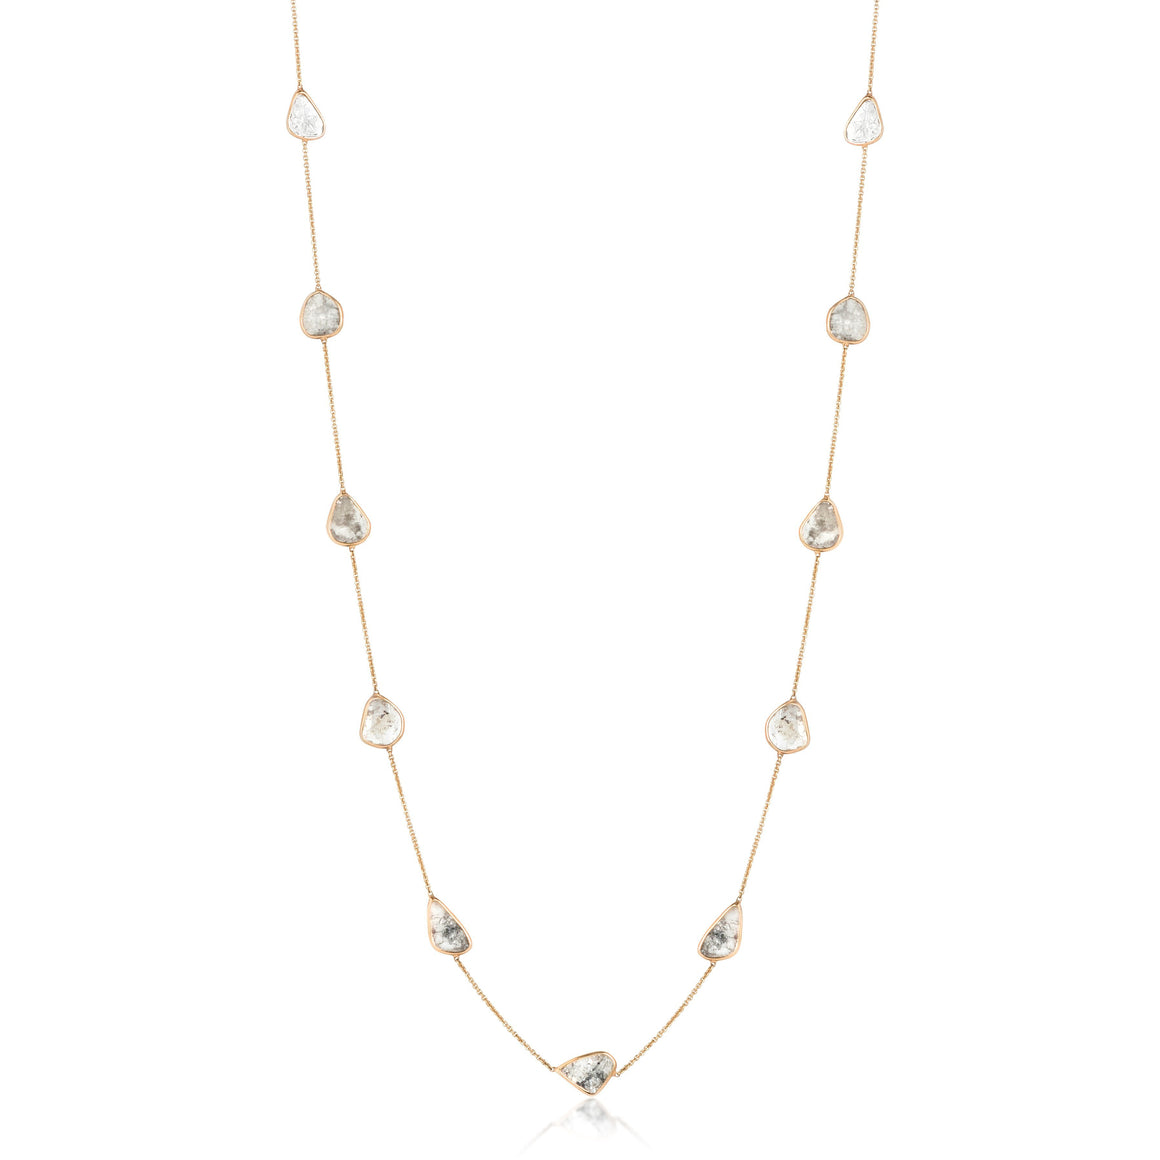 GRAY DIAMOND SLICES SET IN A YELLOW GOLD CHAIN NECKLACE